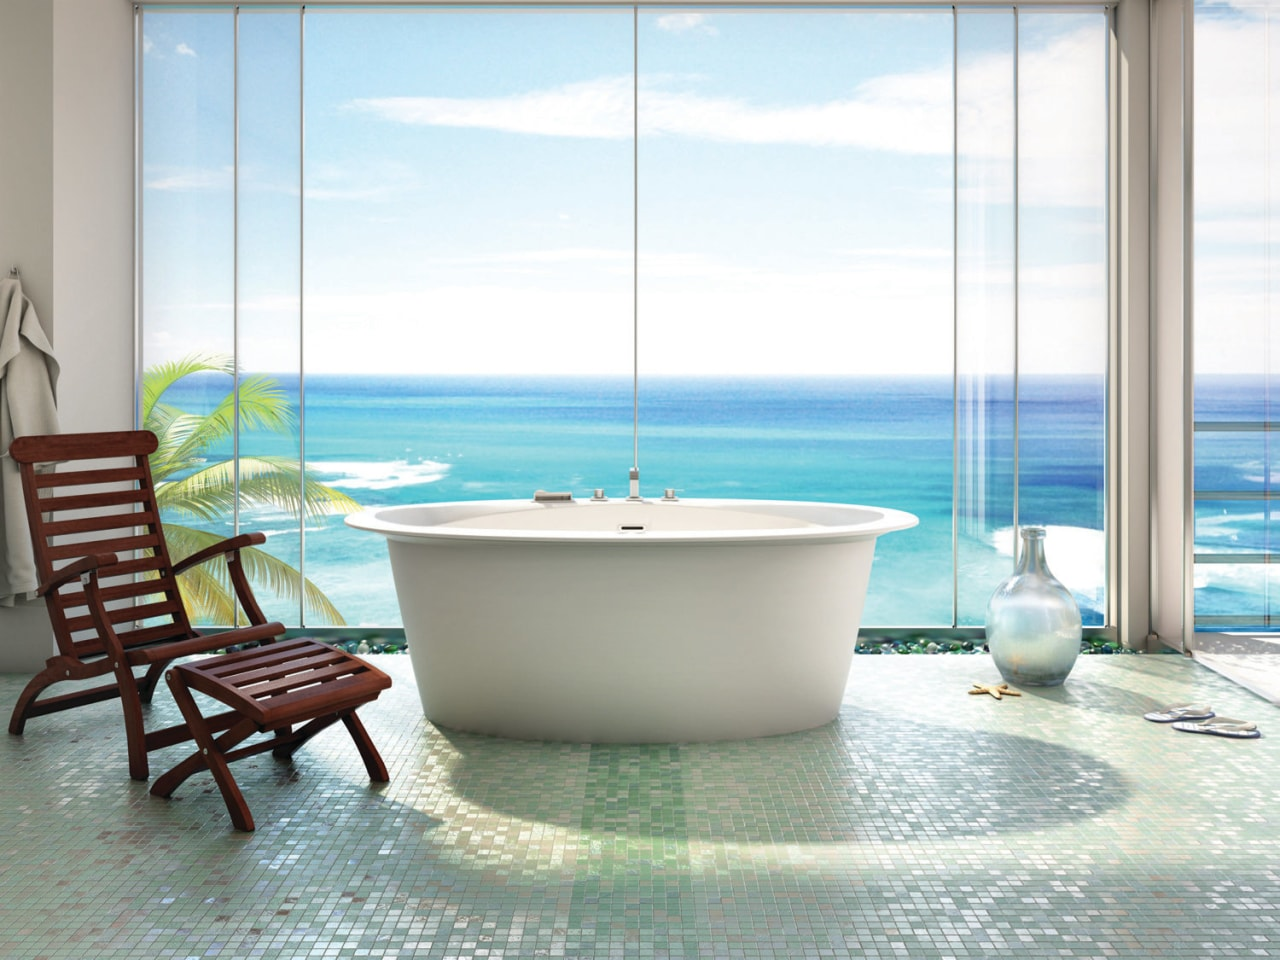 Resort-style bathing is all about the feel-good factor. bathroom, bathtub, interior design, plumbing fixture, property, sea, swimming pool, table, window, white